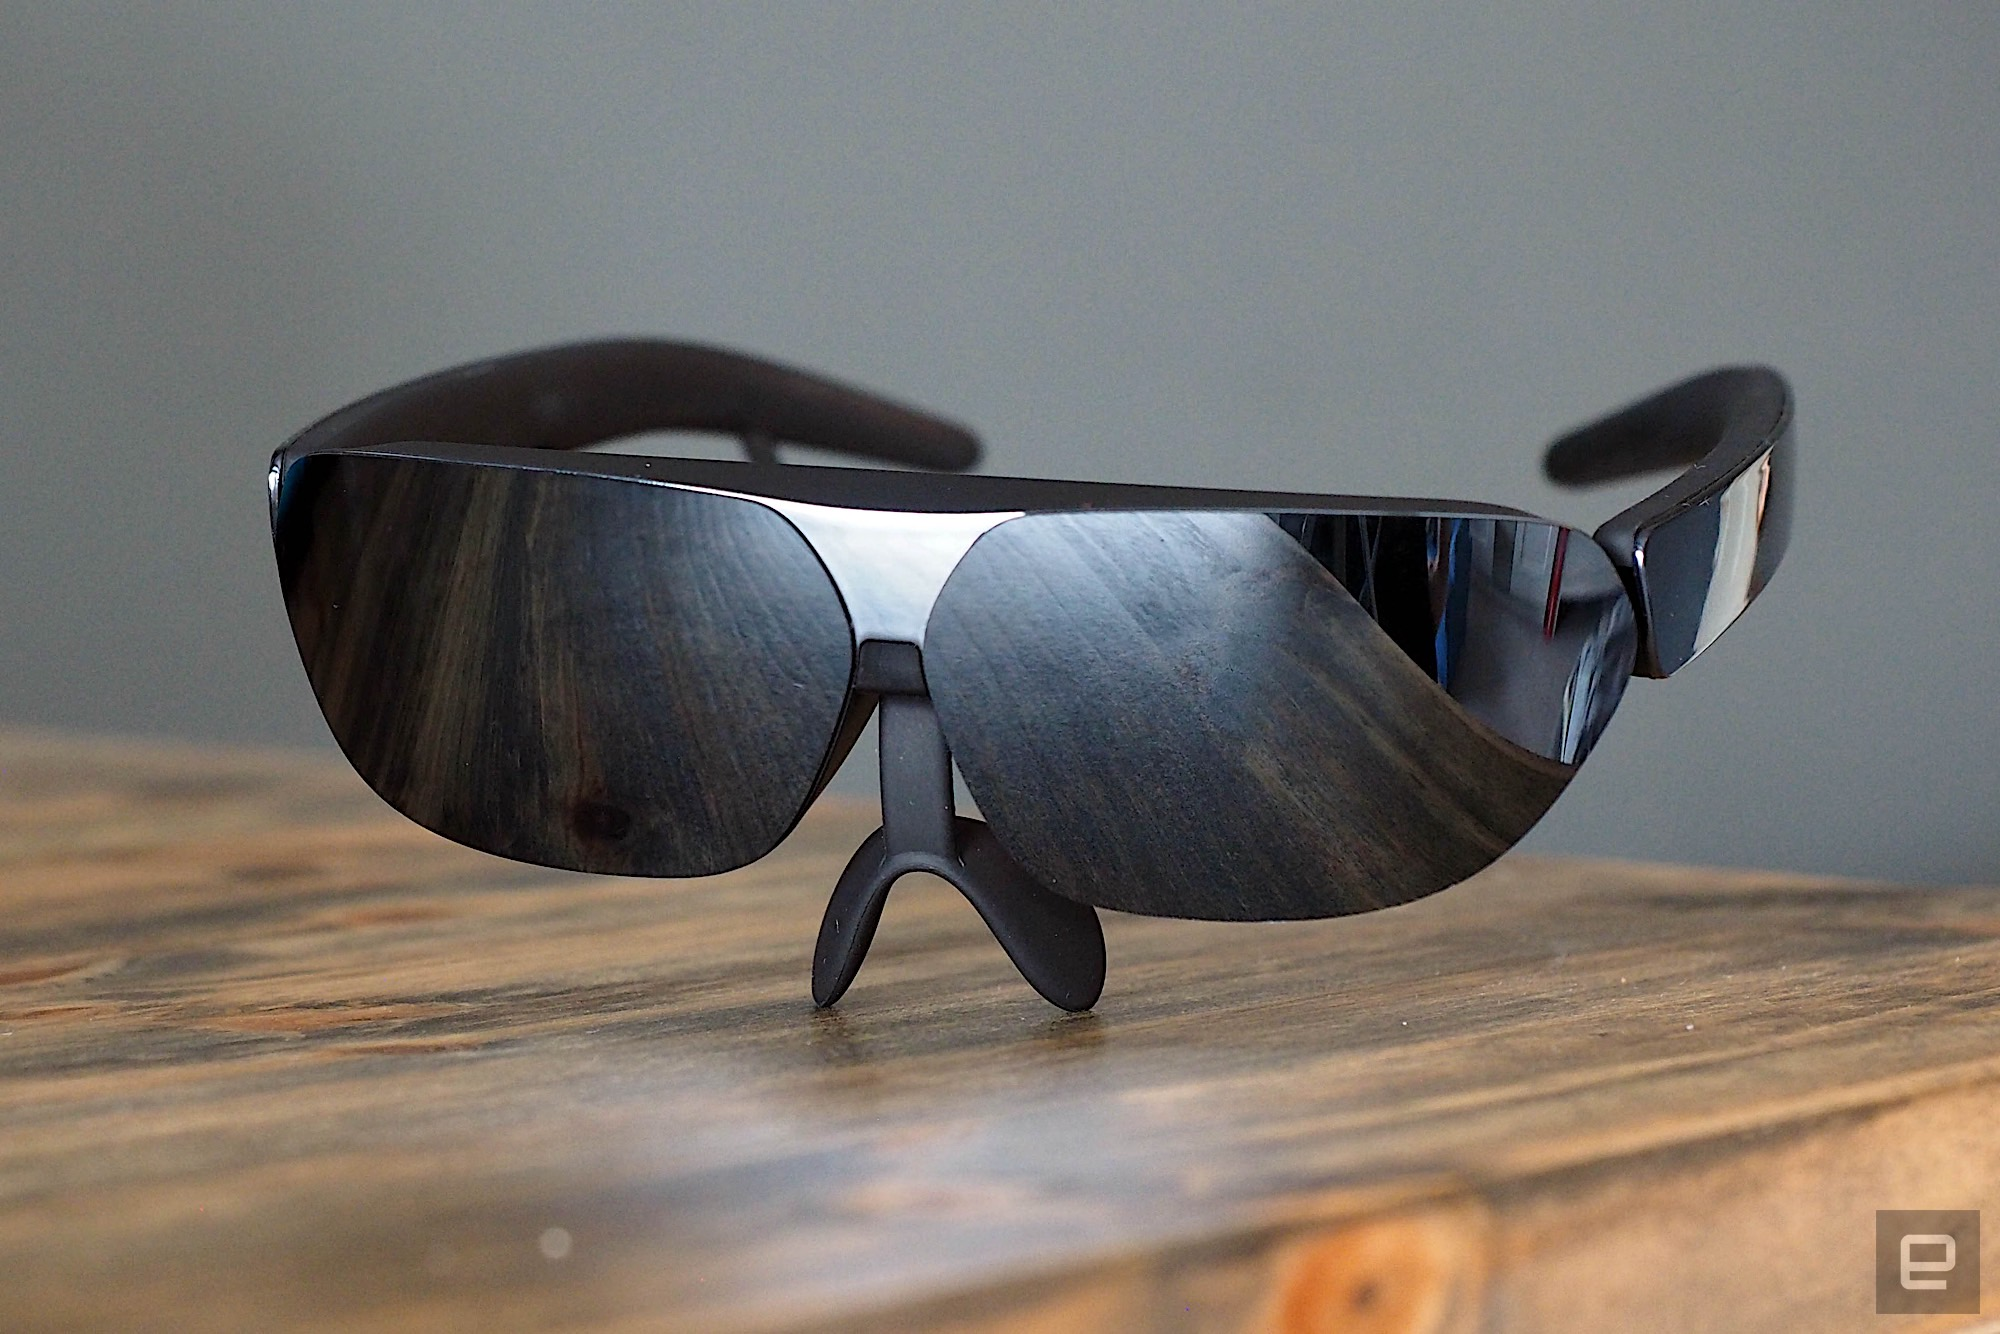 TCL's Nxtwear G cinema glasses could have been great